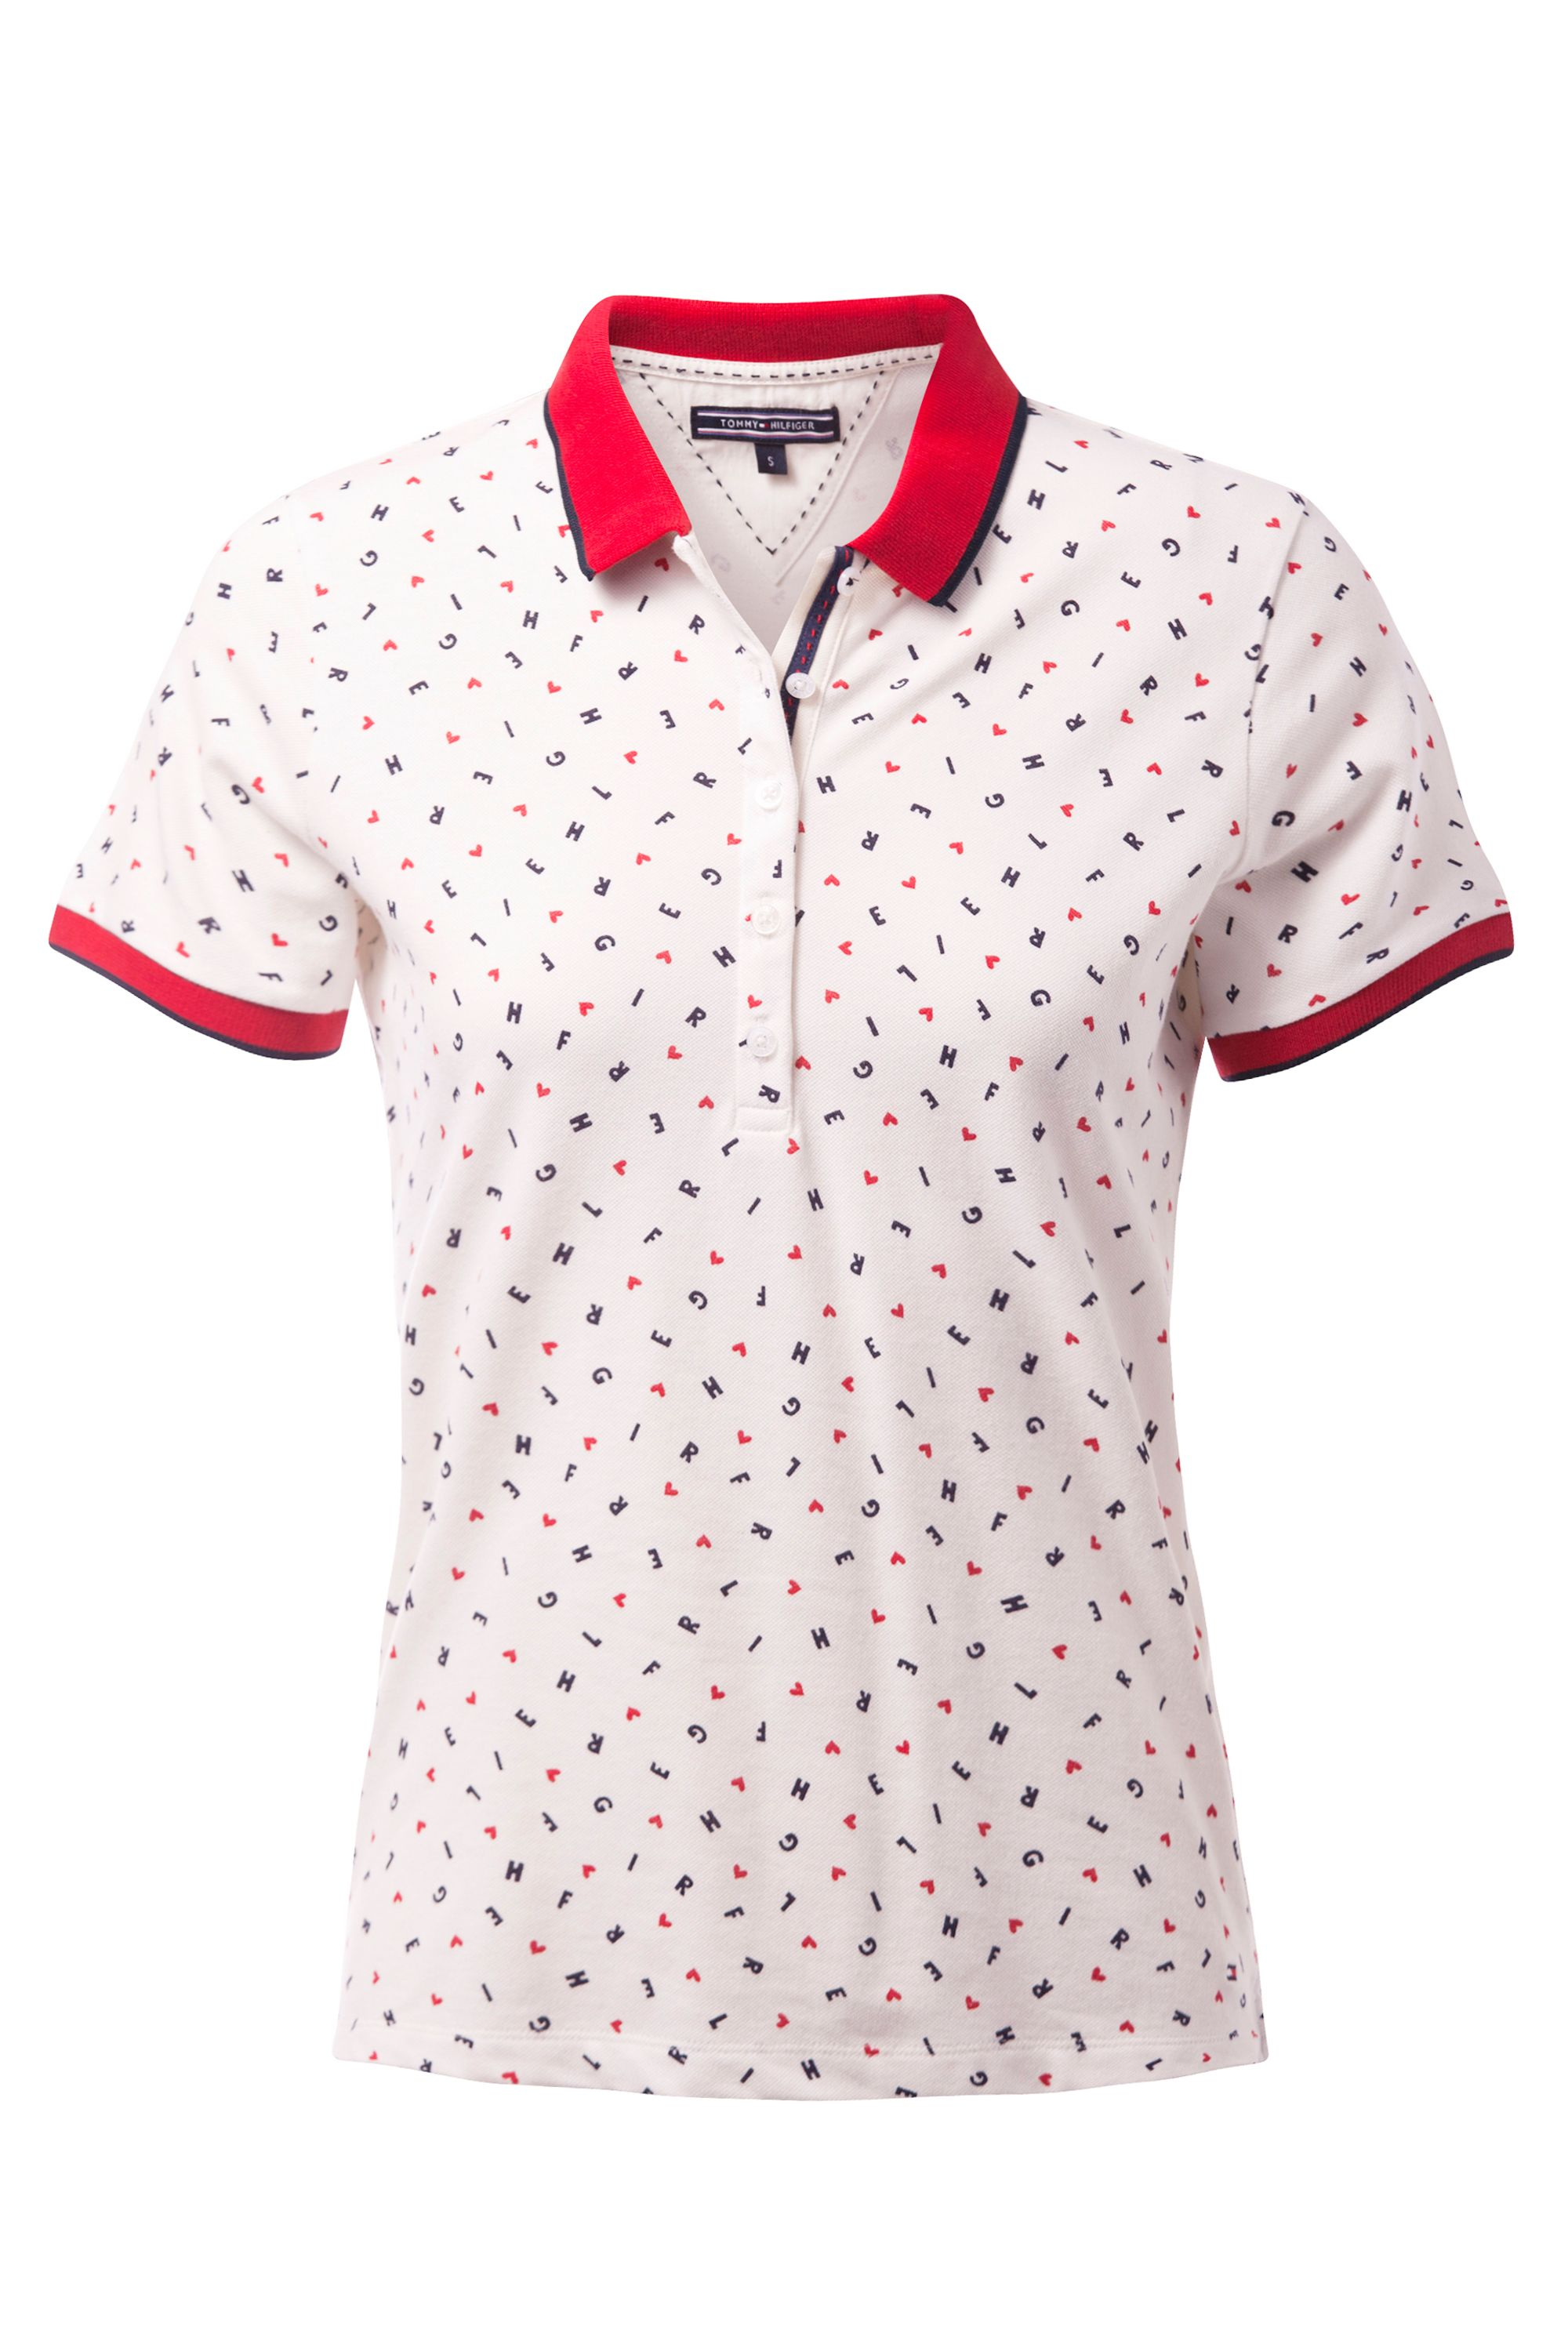 Tommy Hilfiger Dinah Print Polo Top, White